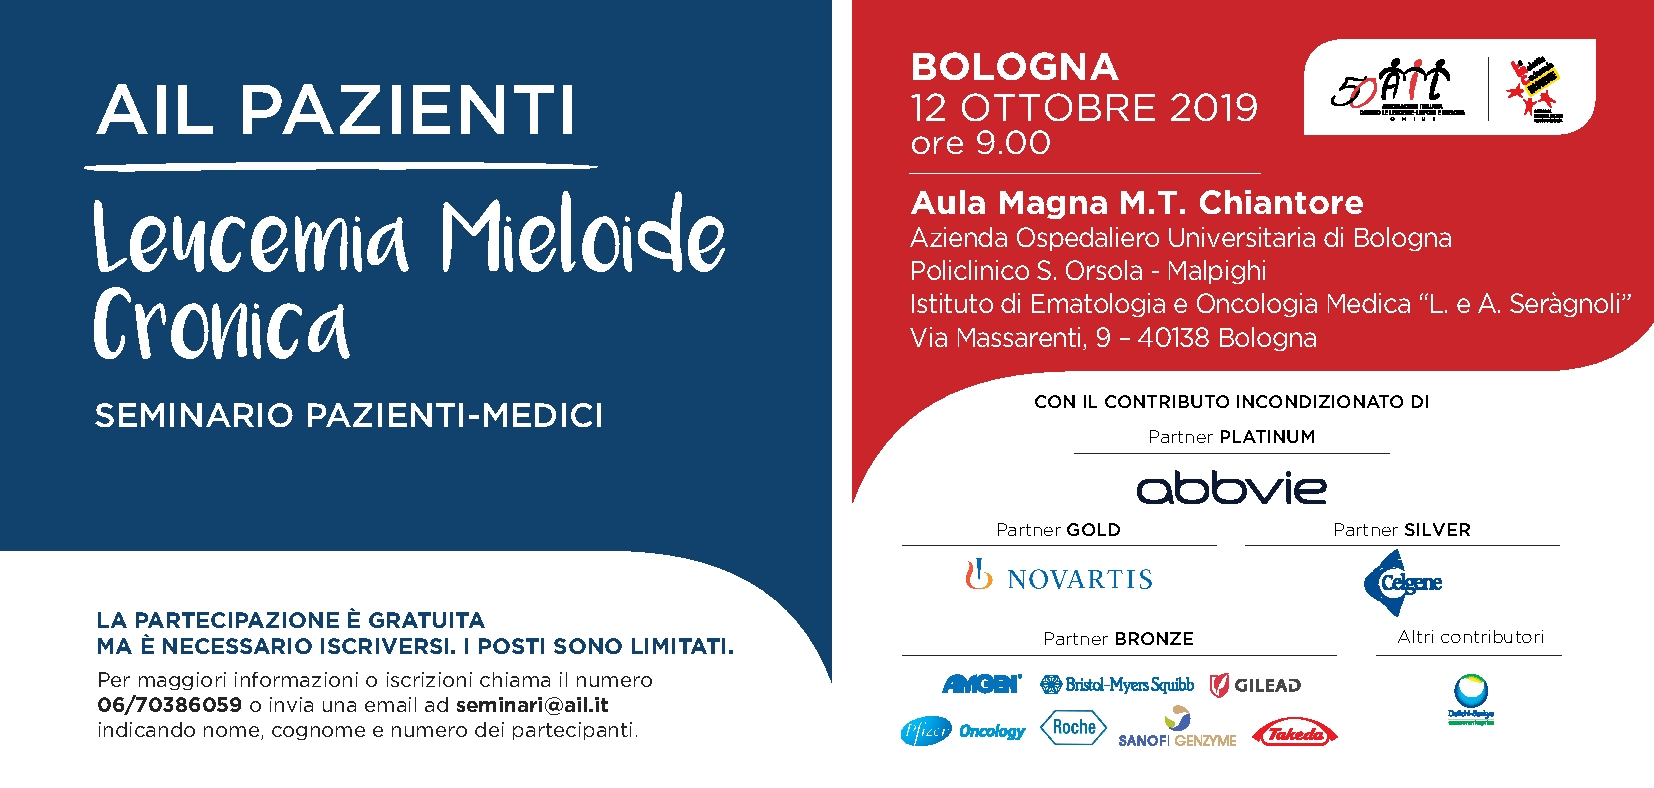 SaveTheDate Bologna